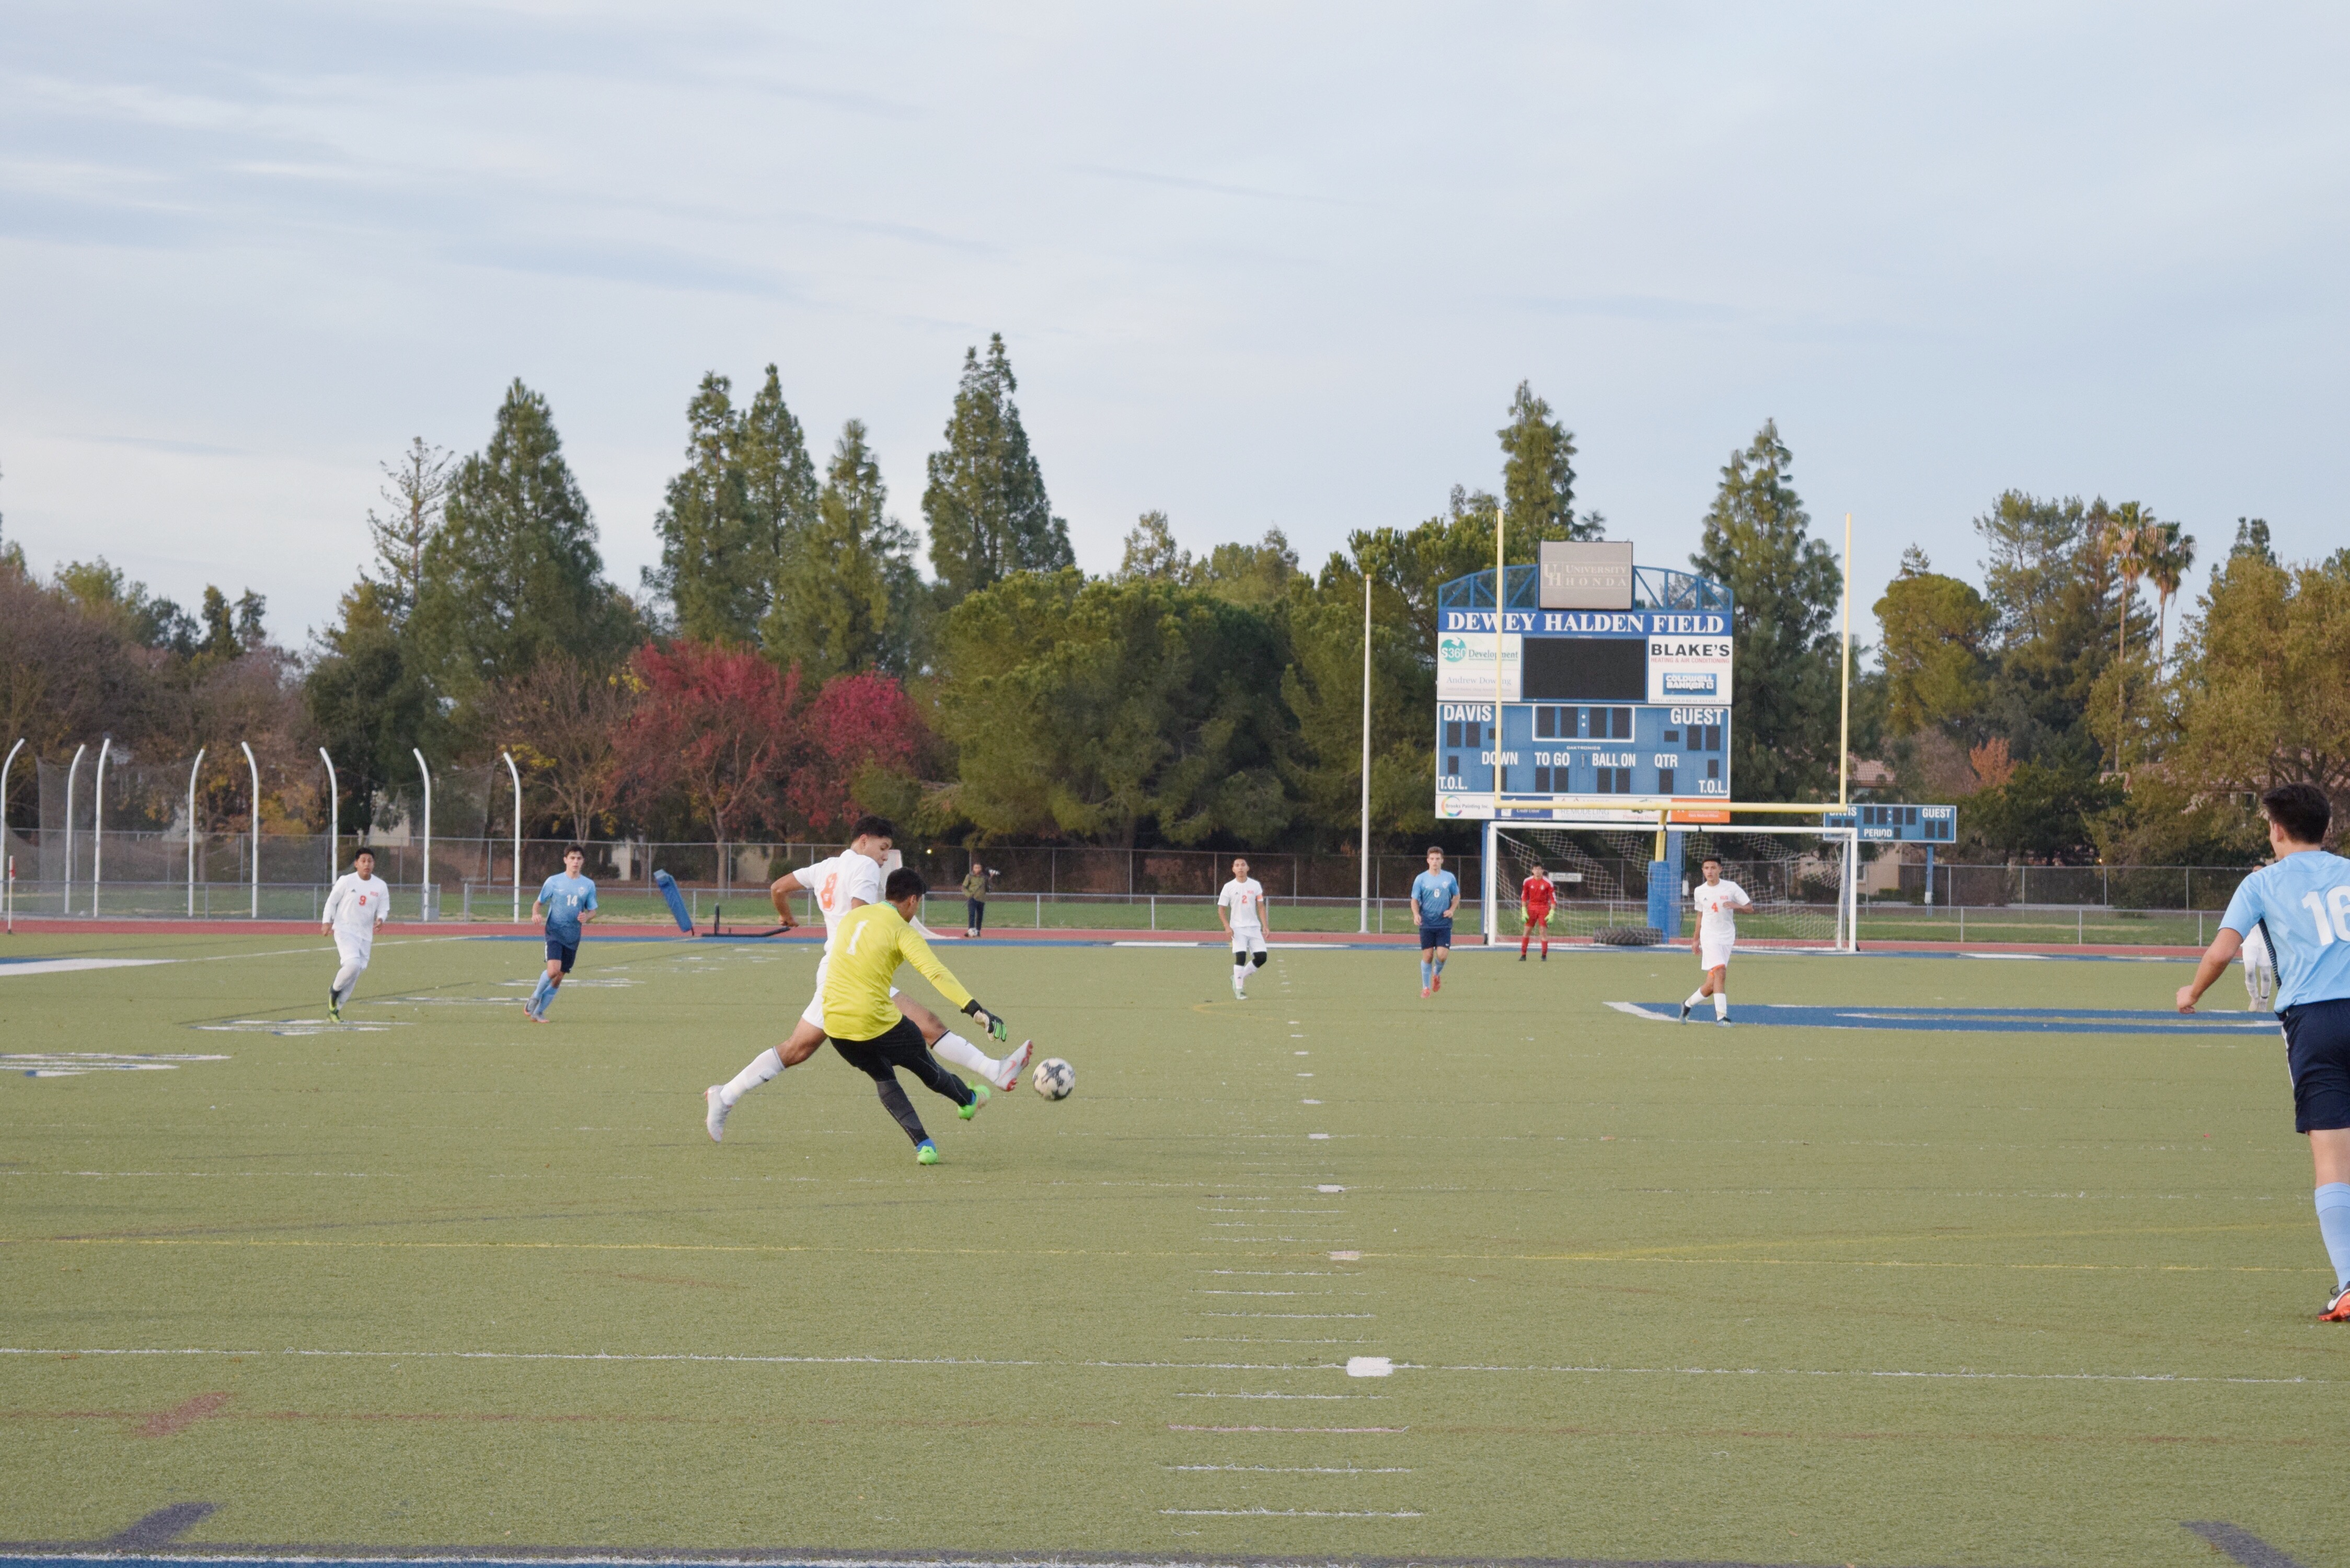 Goalkeeper Cory Kodira clears the ball away from a Woodland attacker.